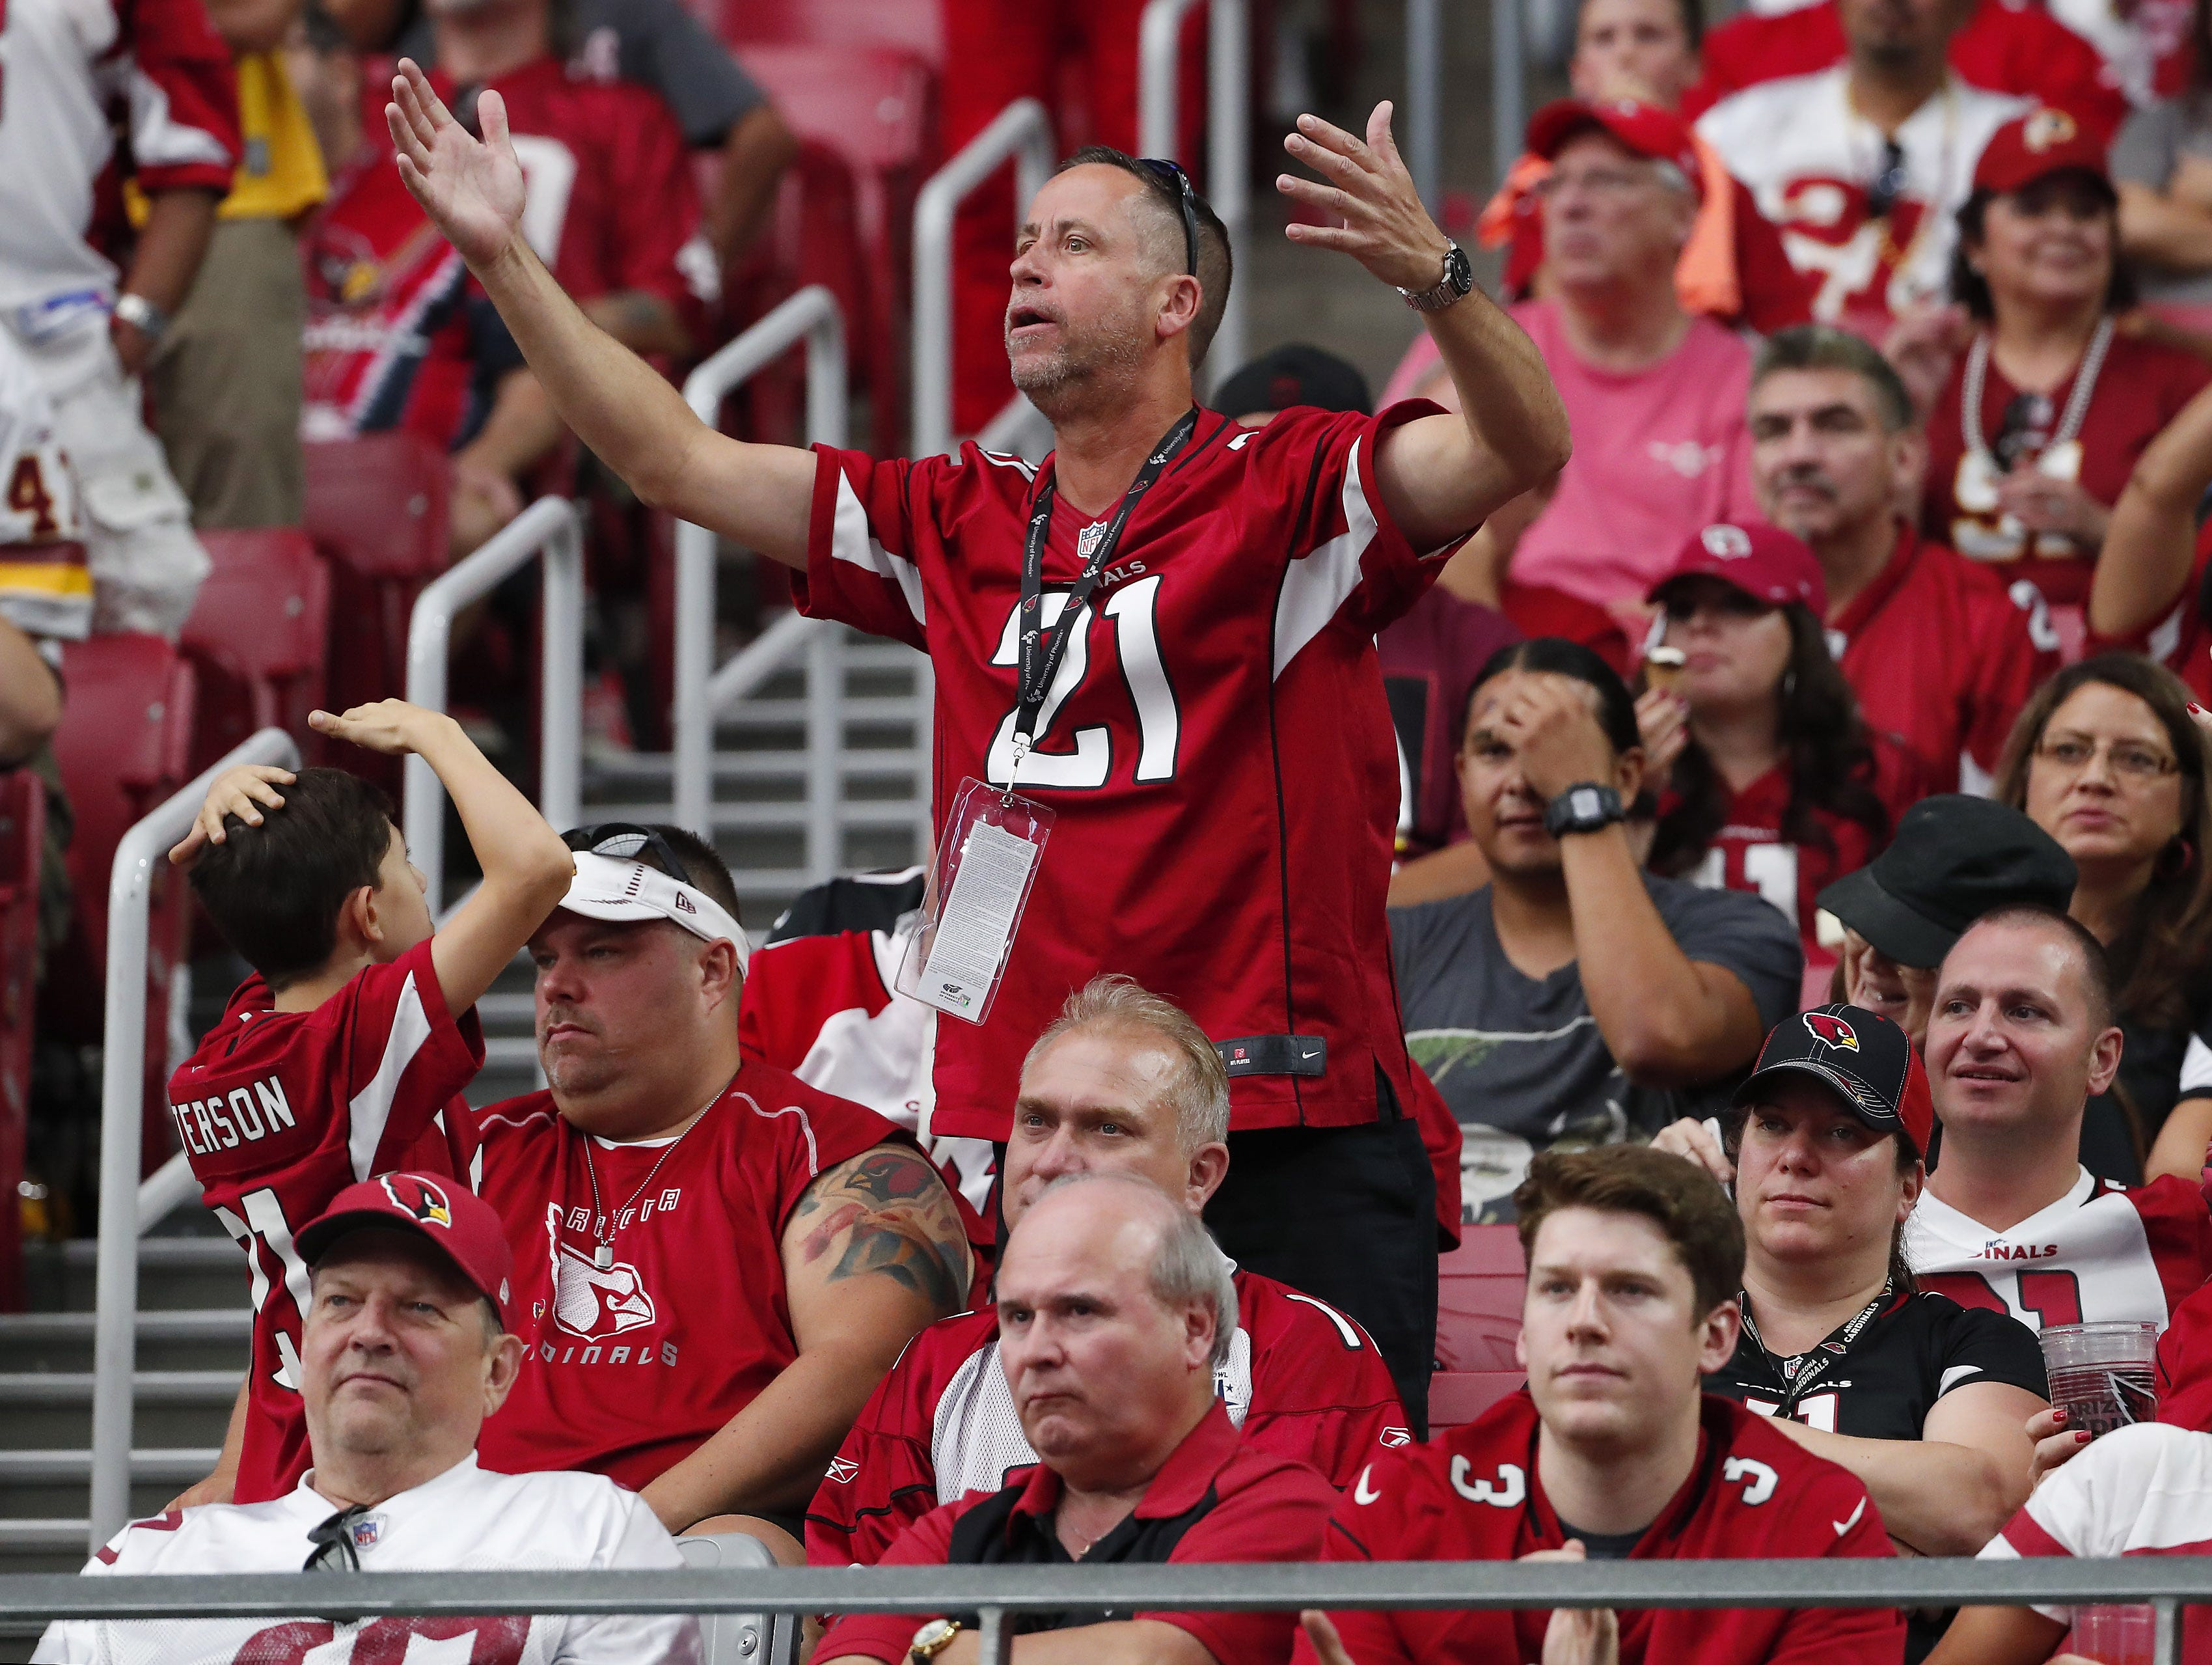 An Arizona Cardinals fan argues for a call against the Washington Redskins during the third quarter at State Farm Stadium in Glendale, Ariz. September 9. 2018.